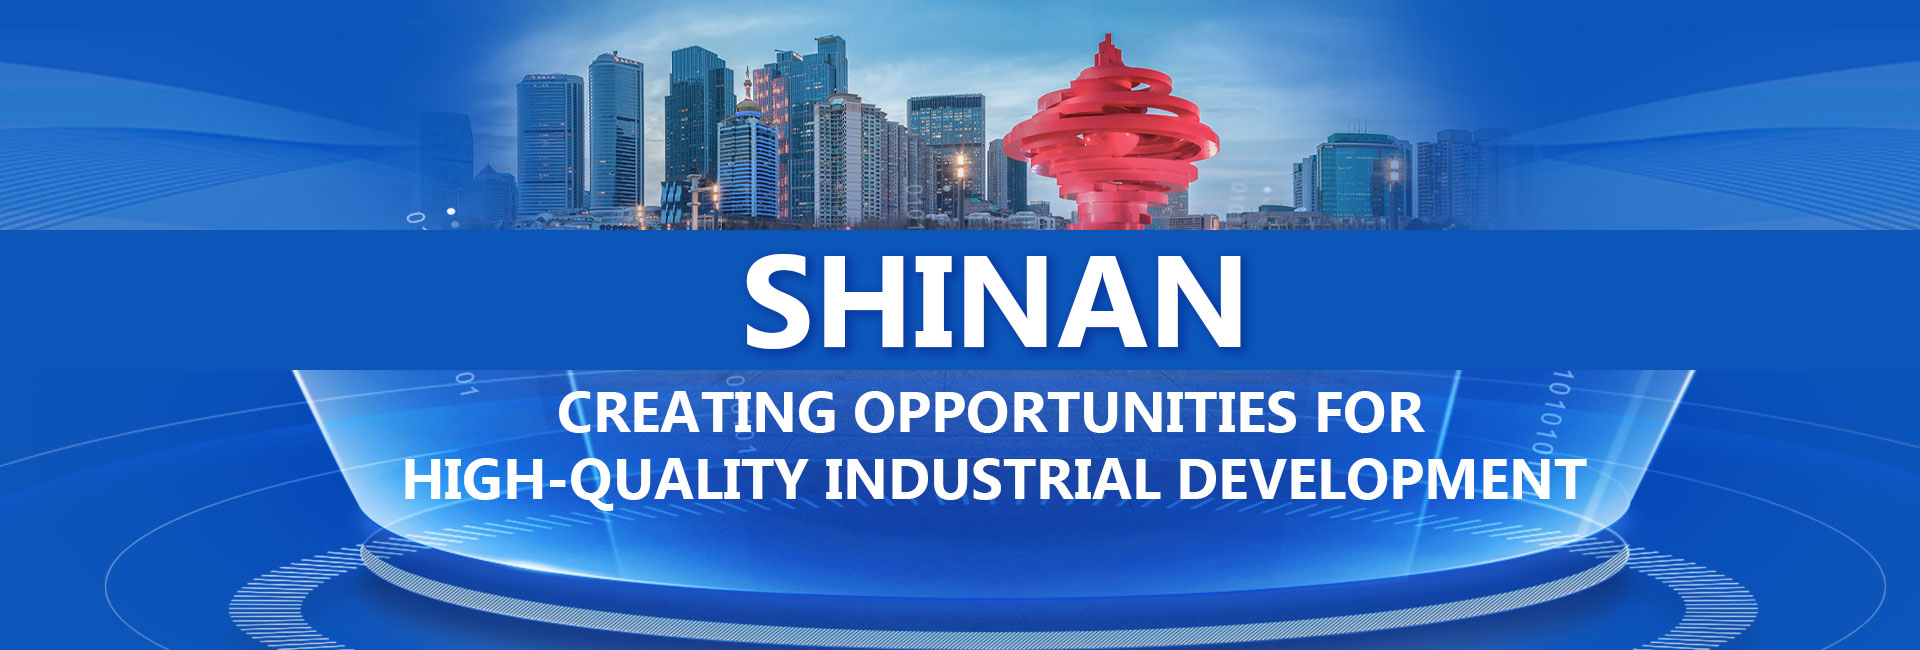 Shinan creating opportunities for high-quality development